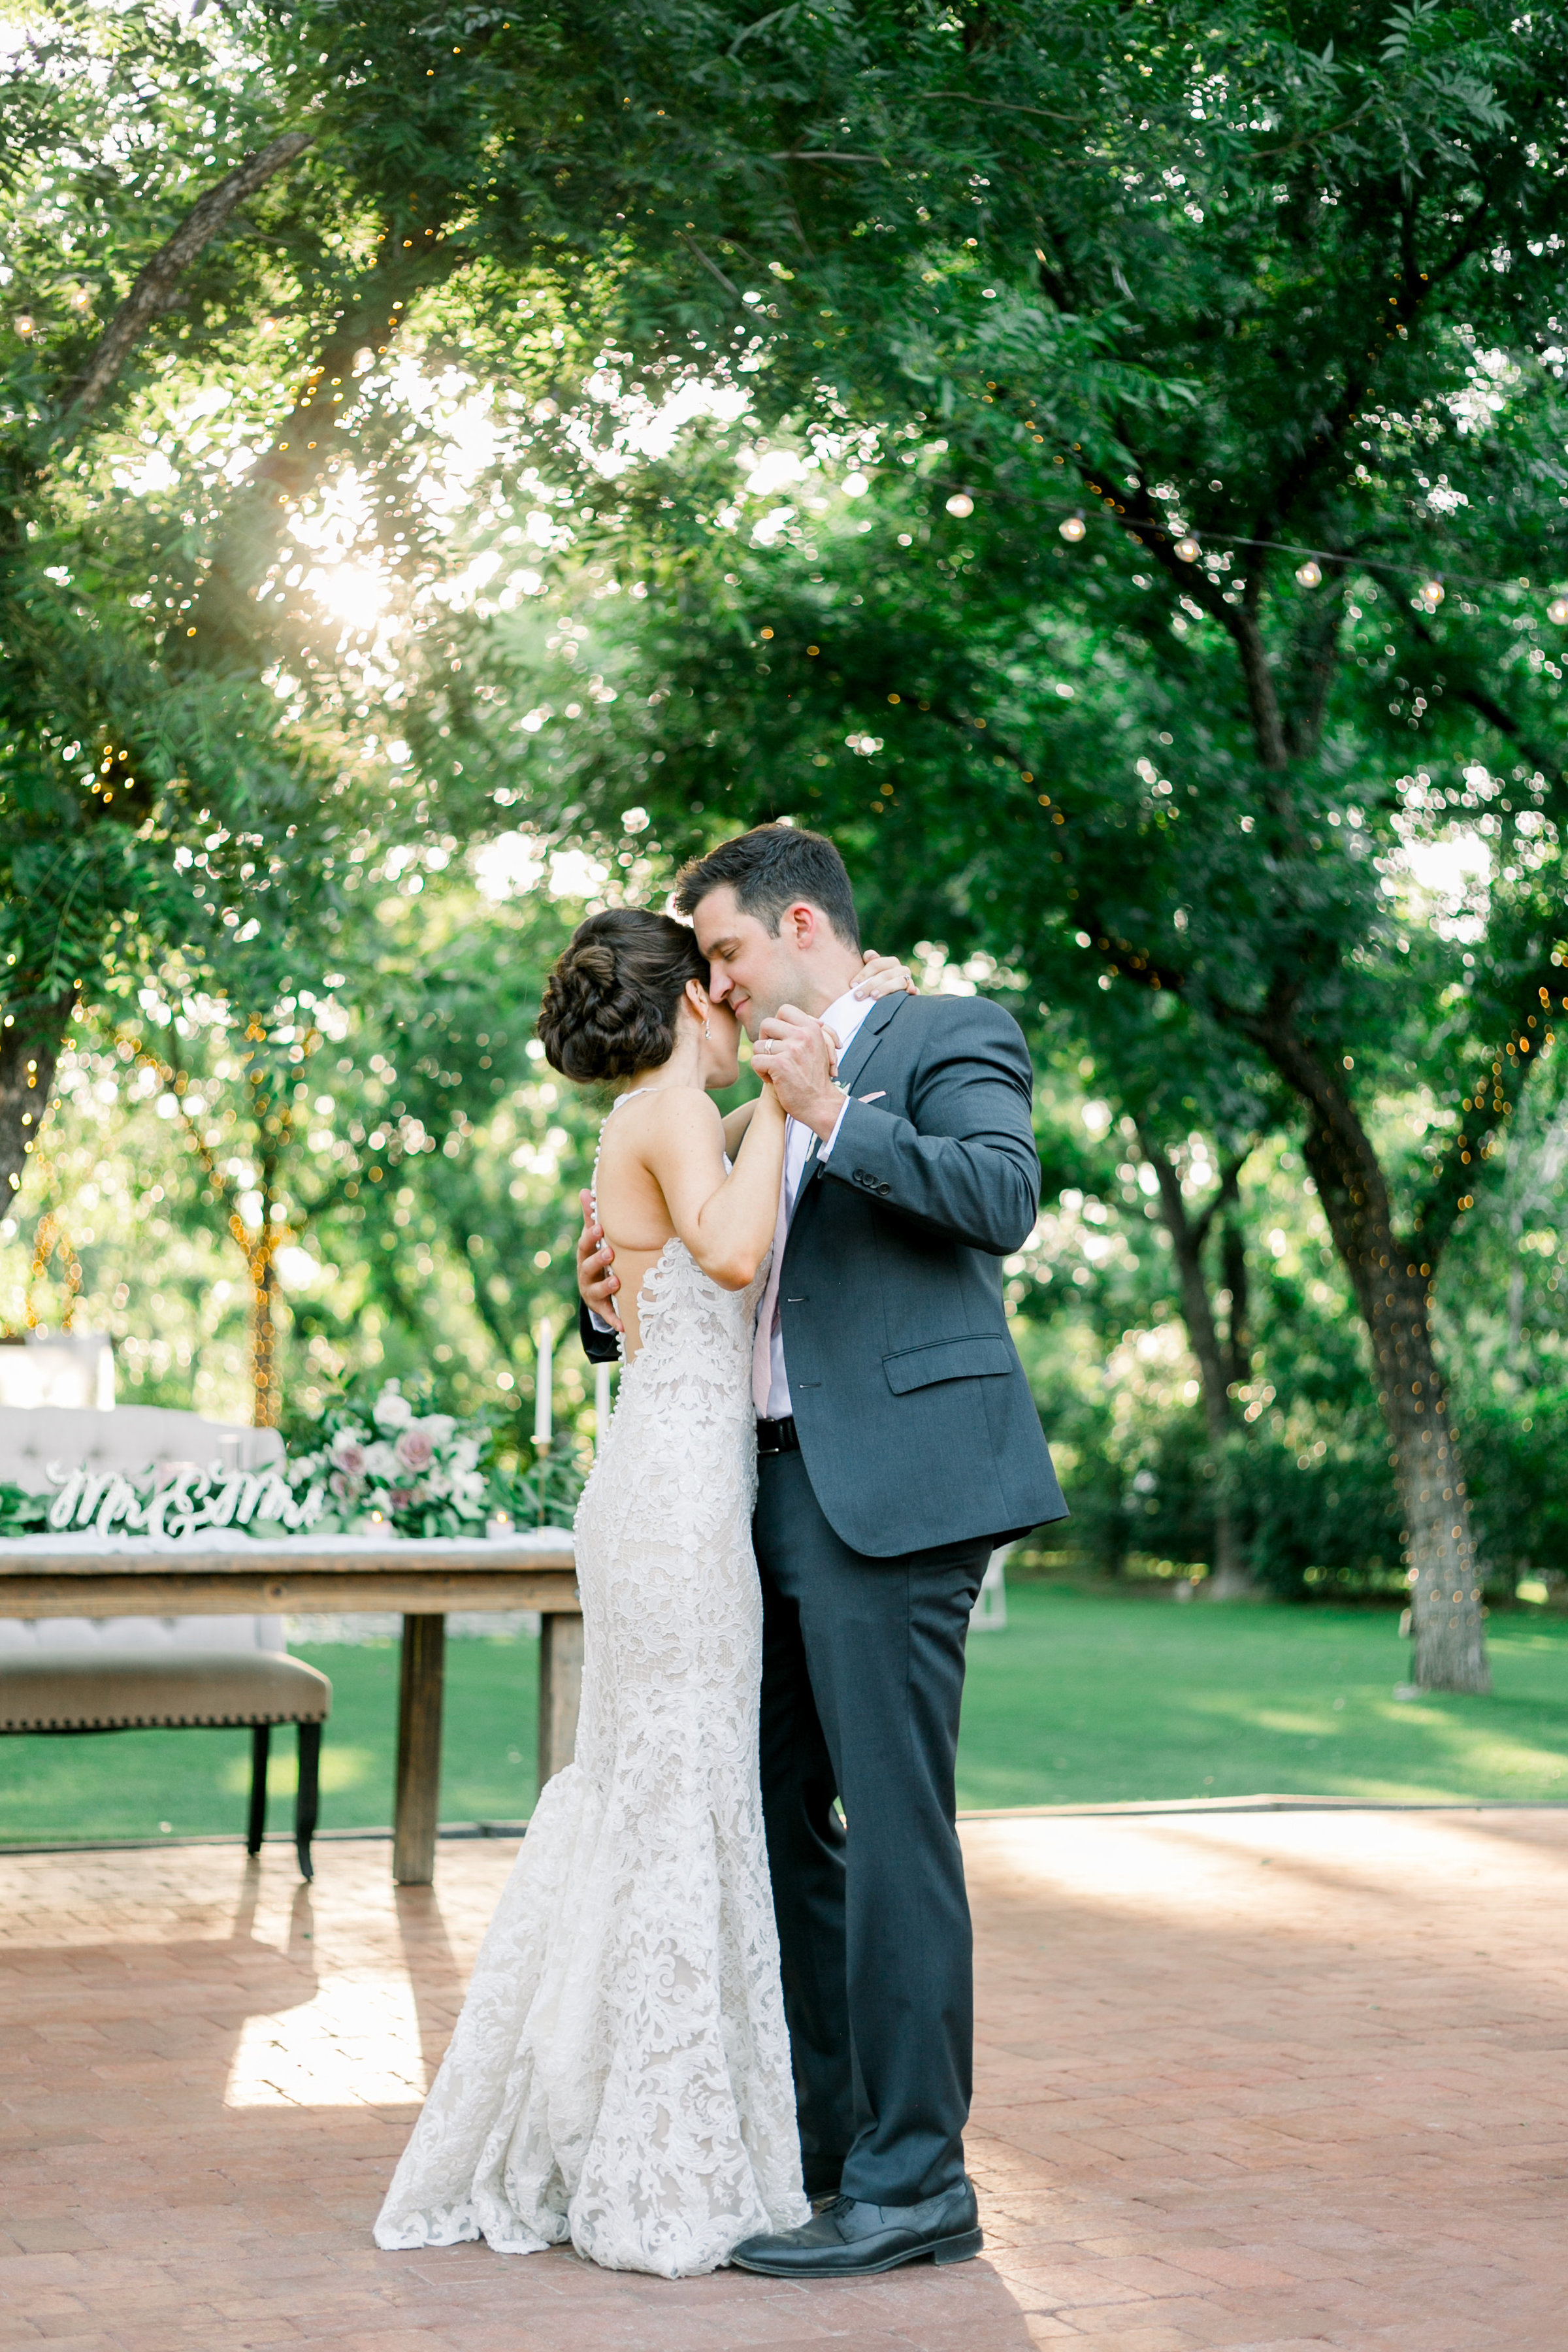 Karlie Colleen Photography - Venue At The Grove - Arizona Wedding - Maggie & Grant -101